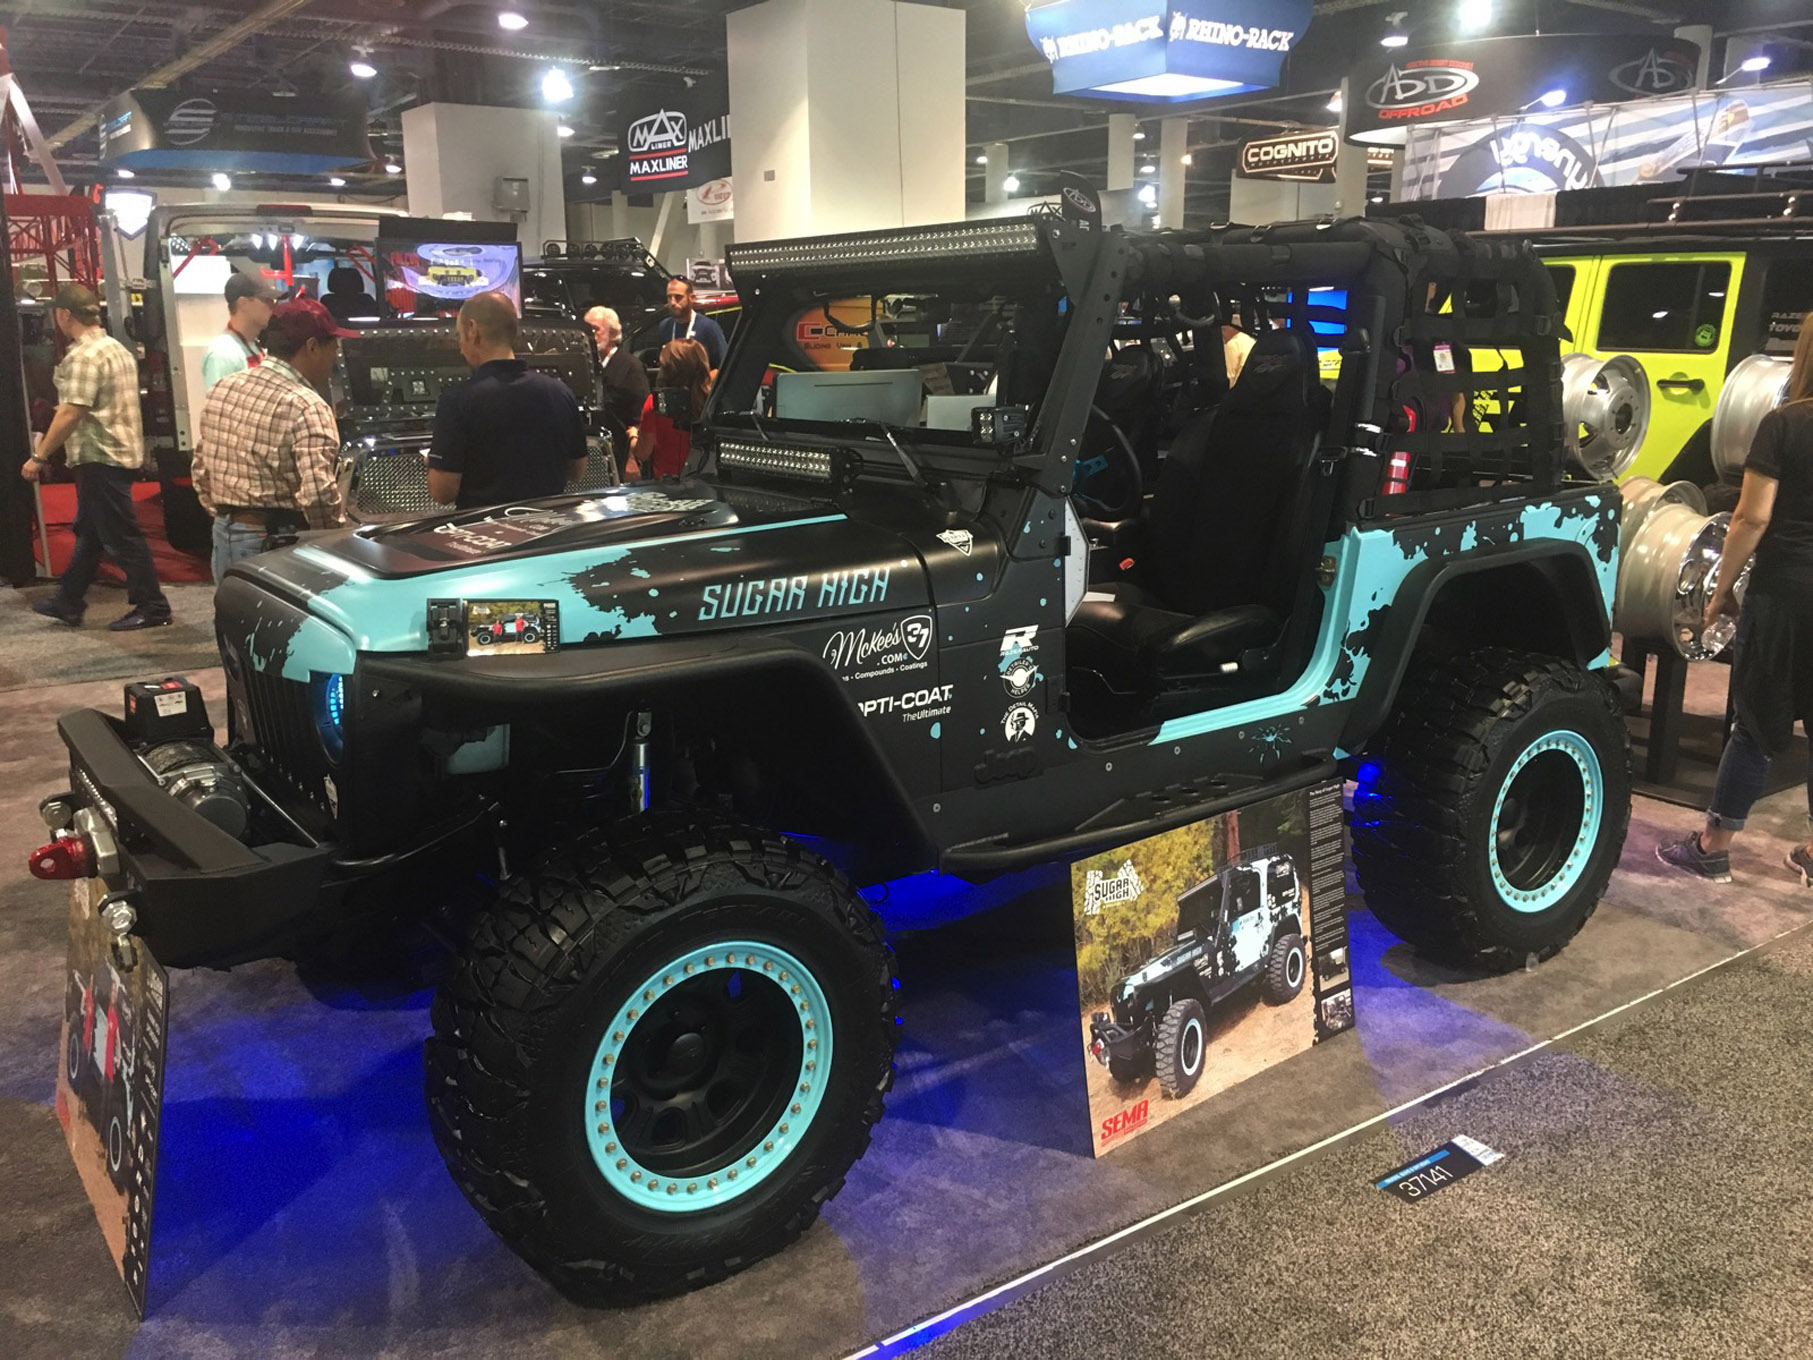 021 sema 2017 day 1 south upper hall gallery photos